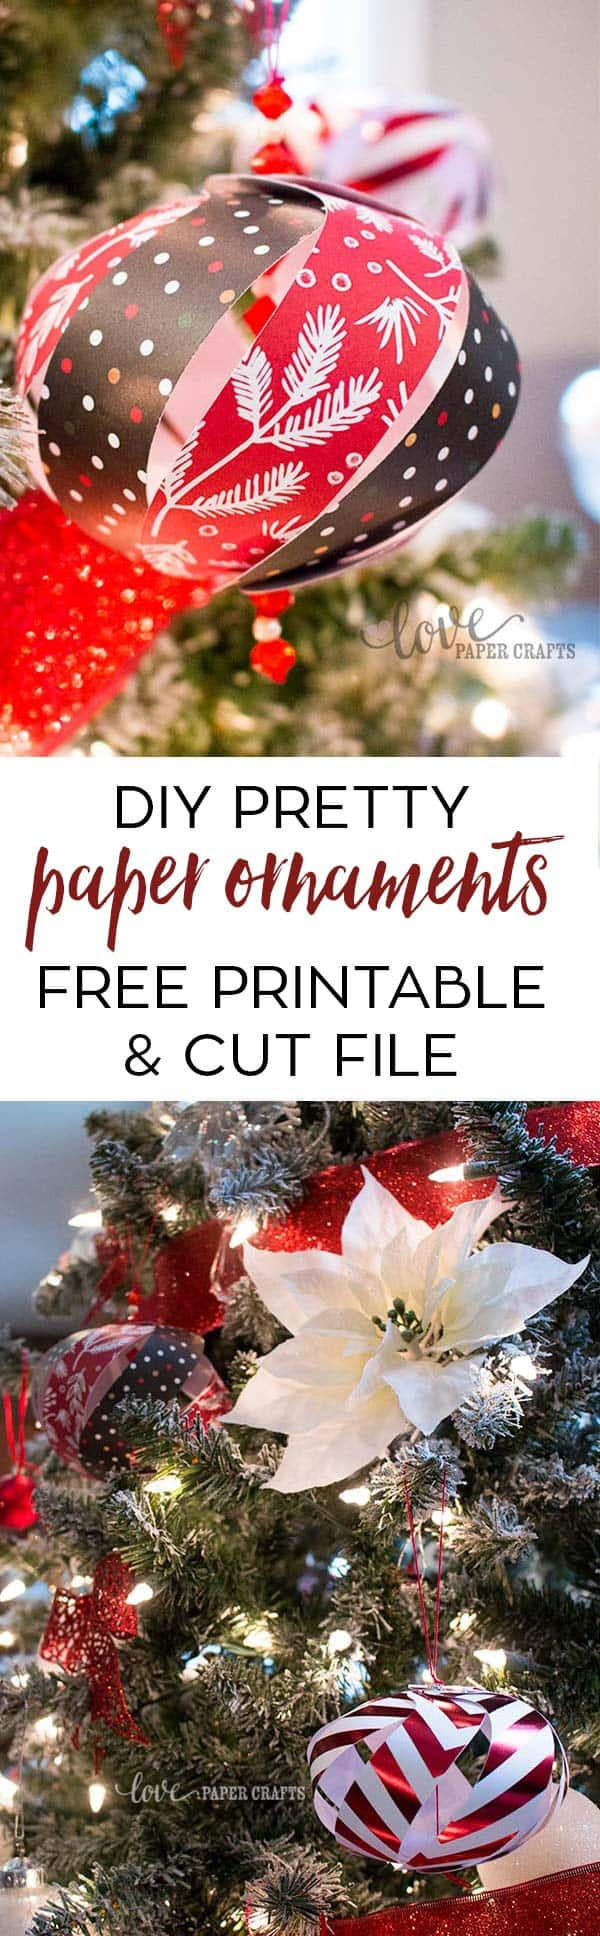 #DIY Pretty Paper Ornaments Free #Printable Template and SVG DXF EPS PNG JPG Cut File for #Silhouette and #Cricut | LovePaperCrafts.com